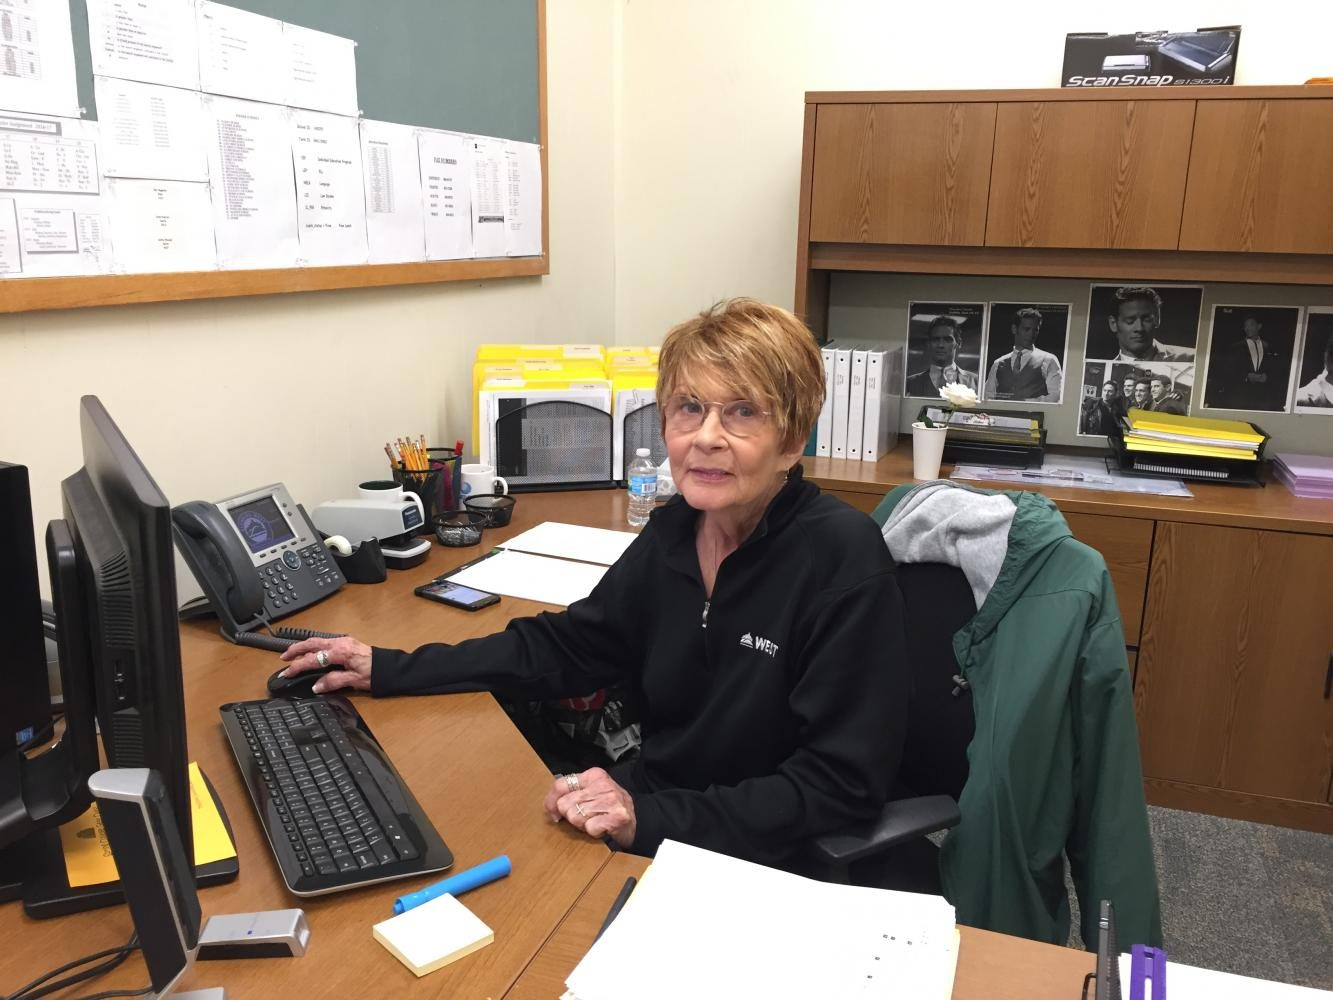 Mrs.+Dawrant+has+been+a+data+entry+specialist+at+Glenbard+West+for+almost+35+years.